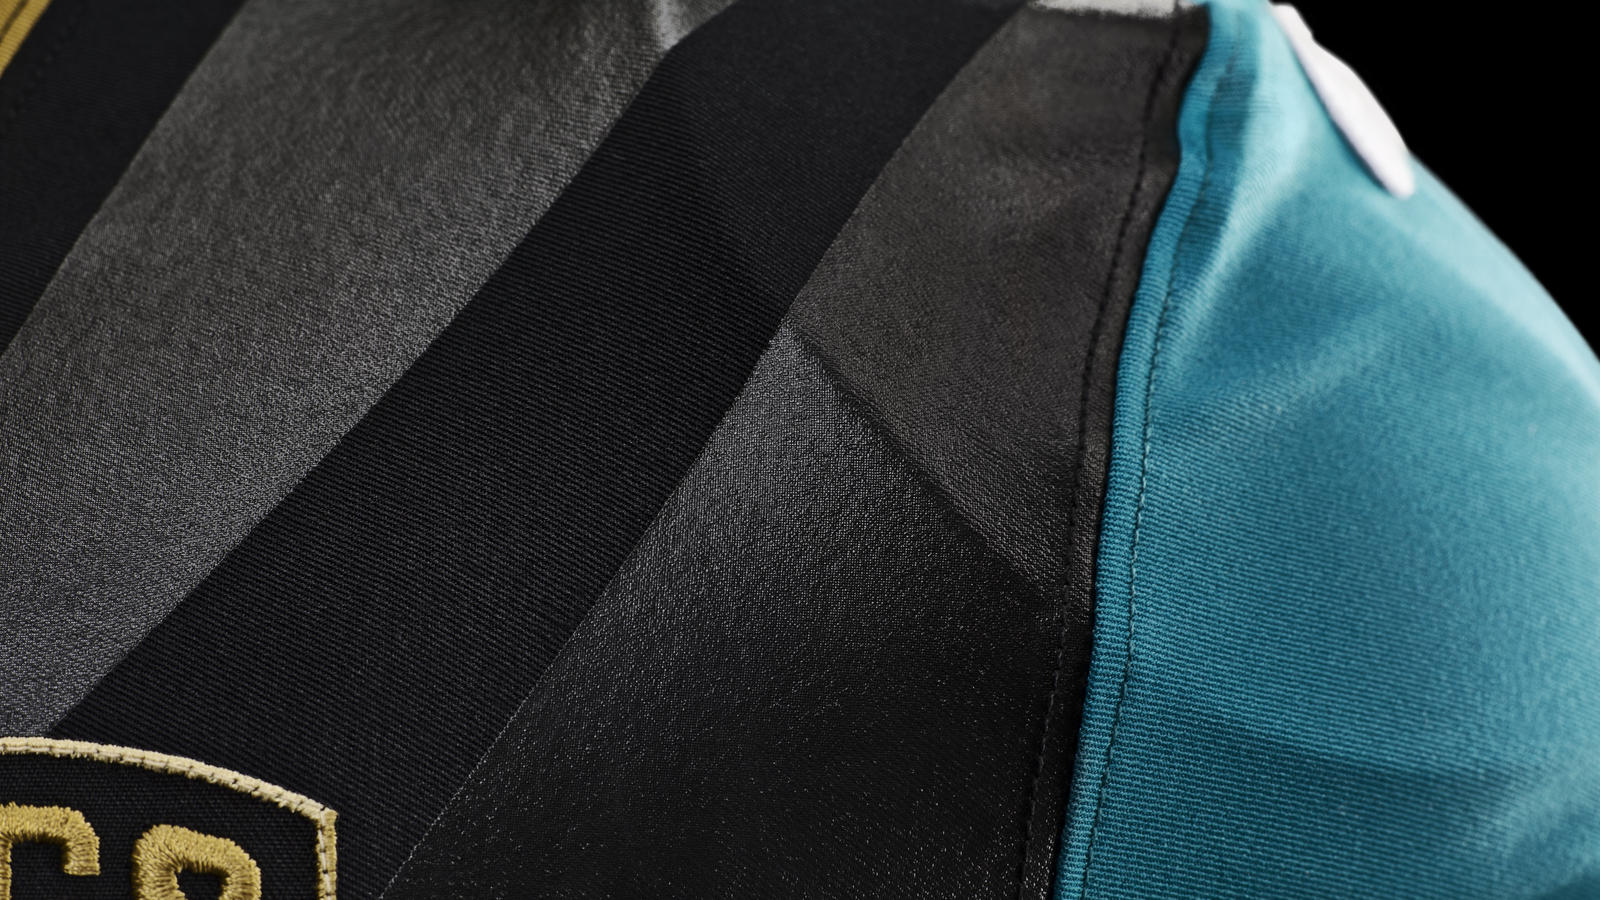 Jaguars Nfl Nike Elite 51 Uniform Shoulder Detail